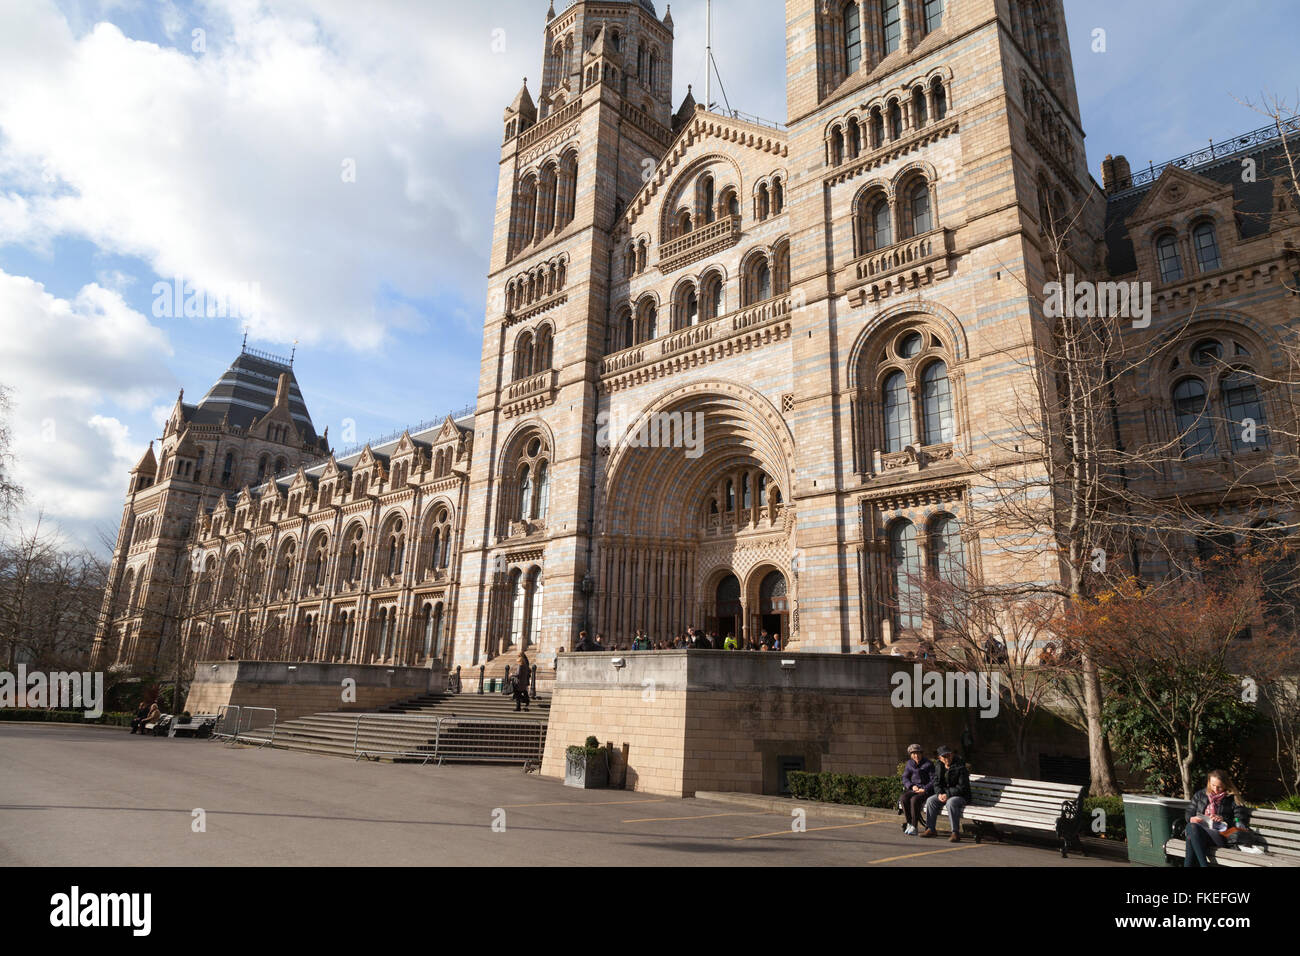 The exterior facade of the Natural History Museum, London UK - Stock Image